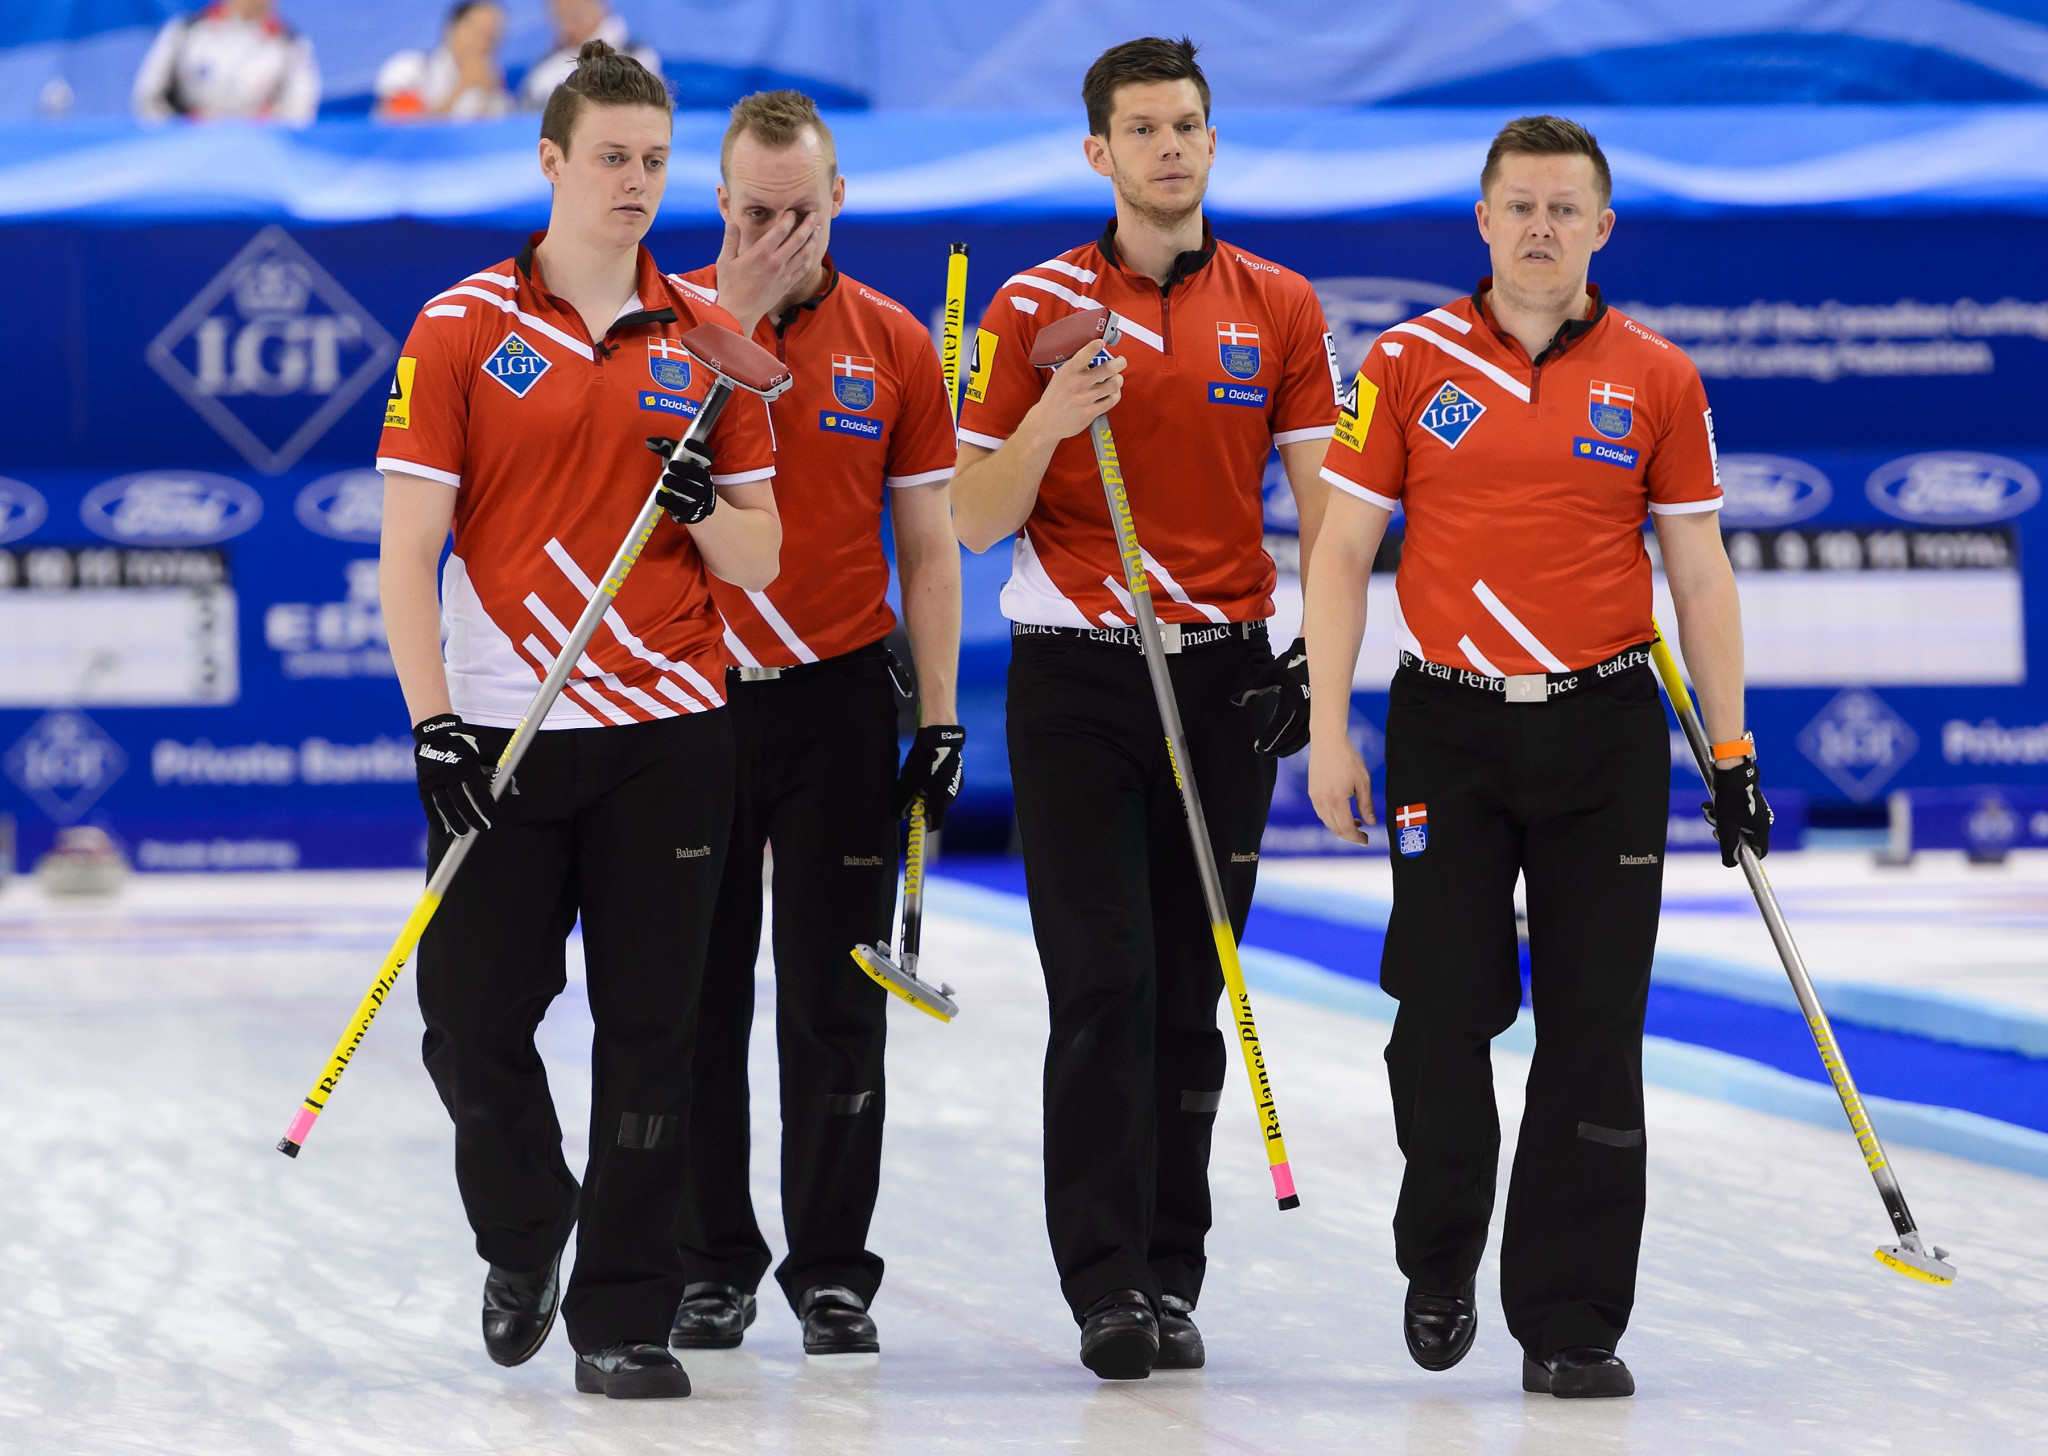 Danish curling is enjoying a fruitful period ©Getty Images